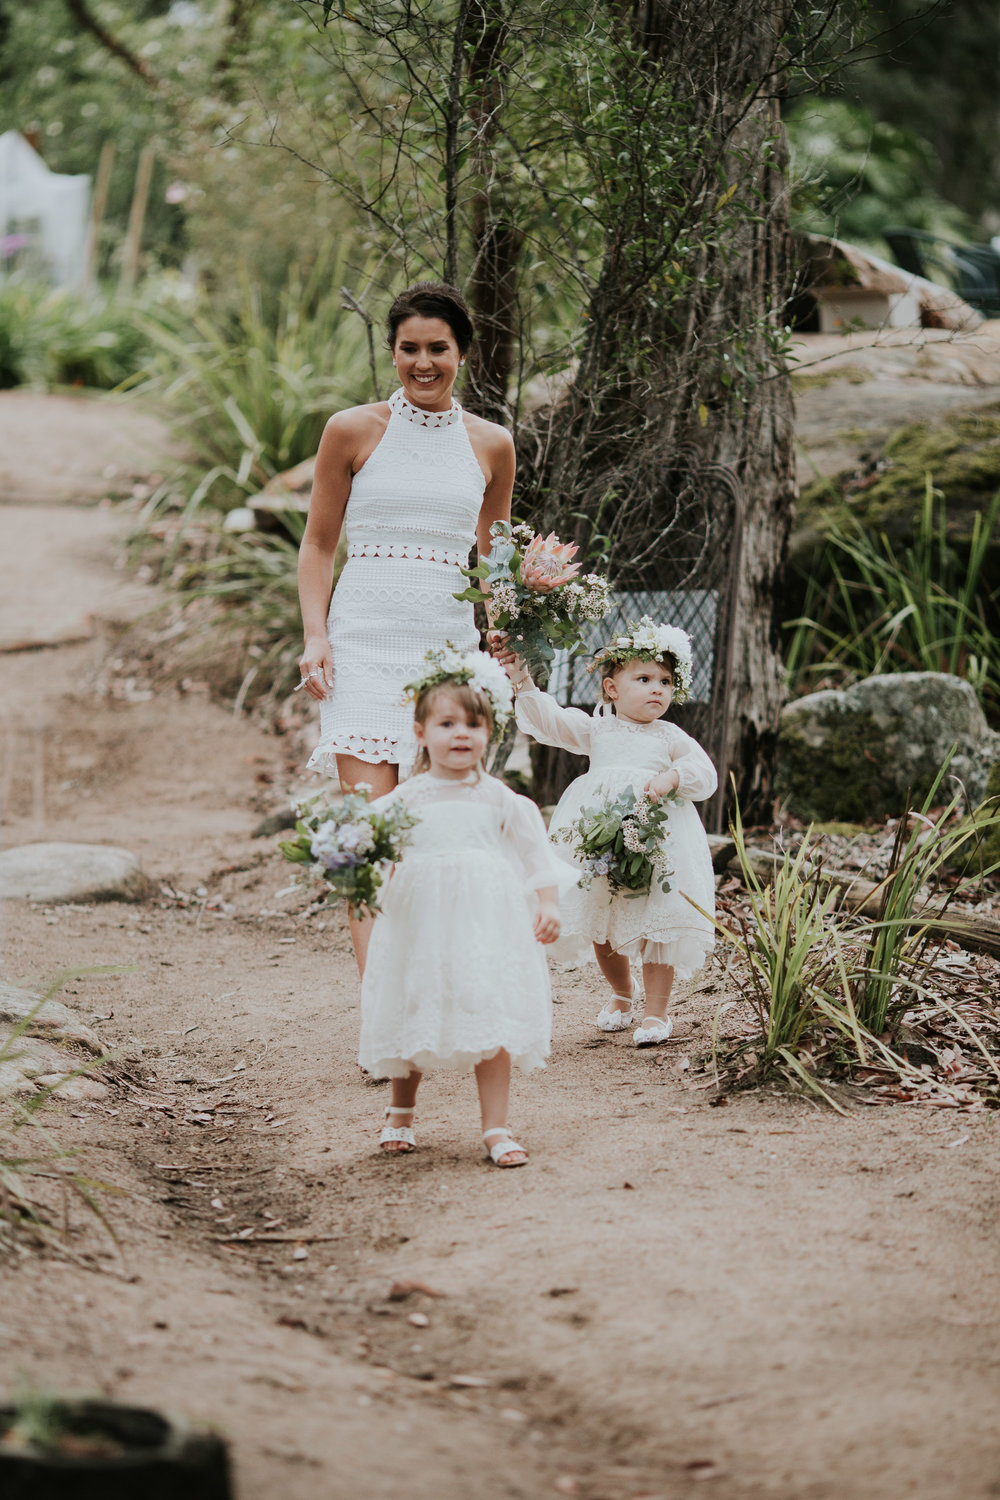 Jesse+Matt+Kangaroo+Valley+Wildwood+Boho+Relaxed+wedding+-86.jpg